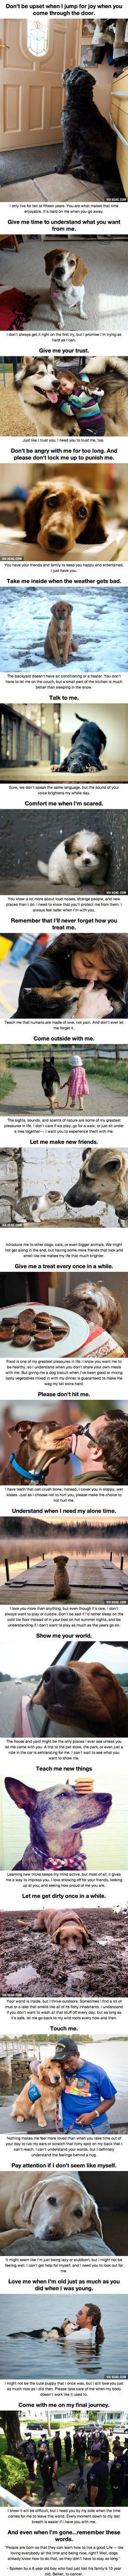 The 20 Important Facts Dog Lovers Must Never Forget